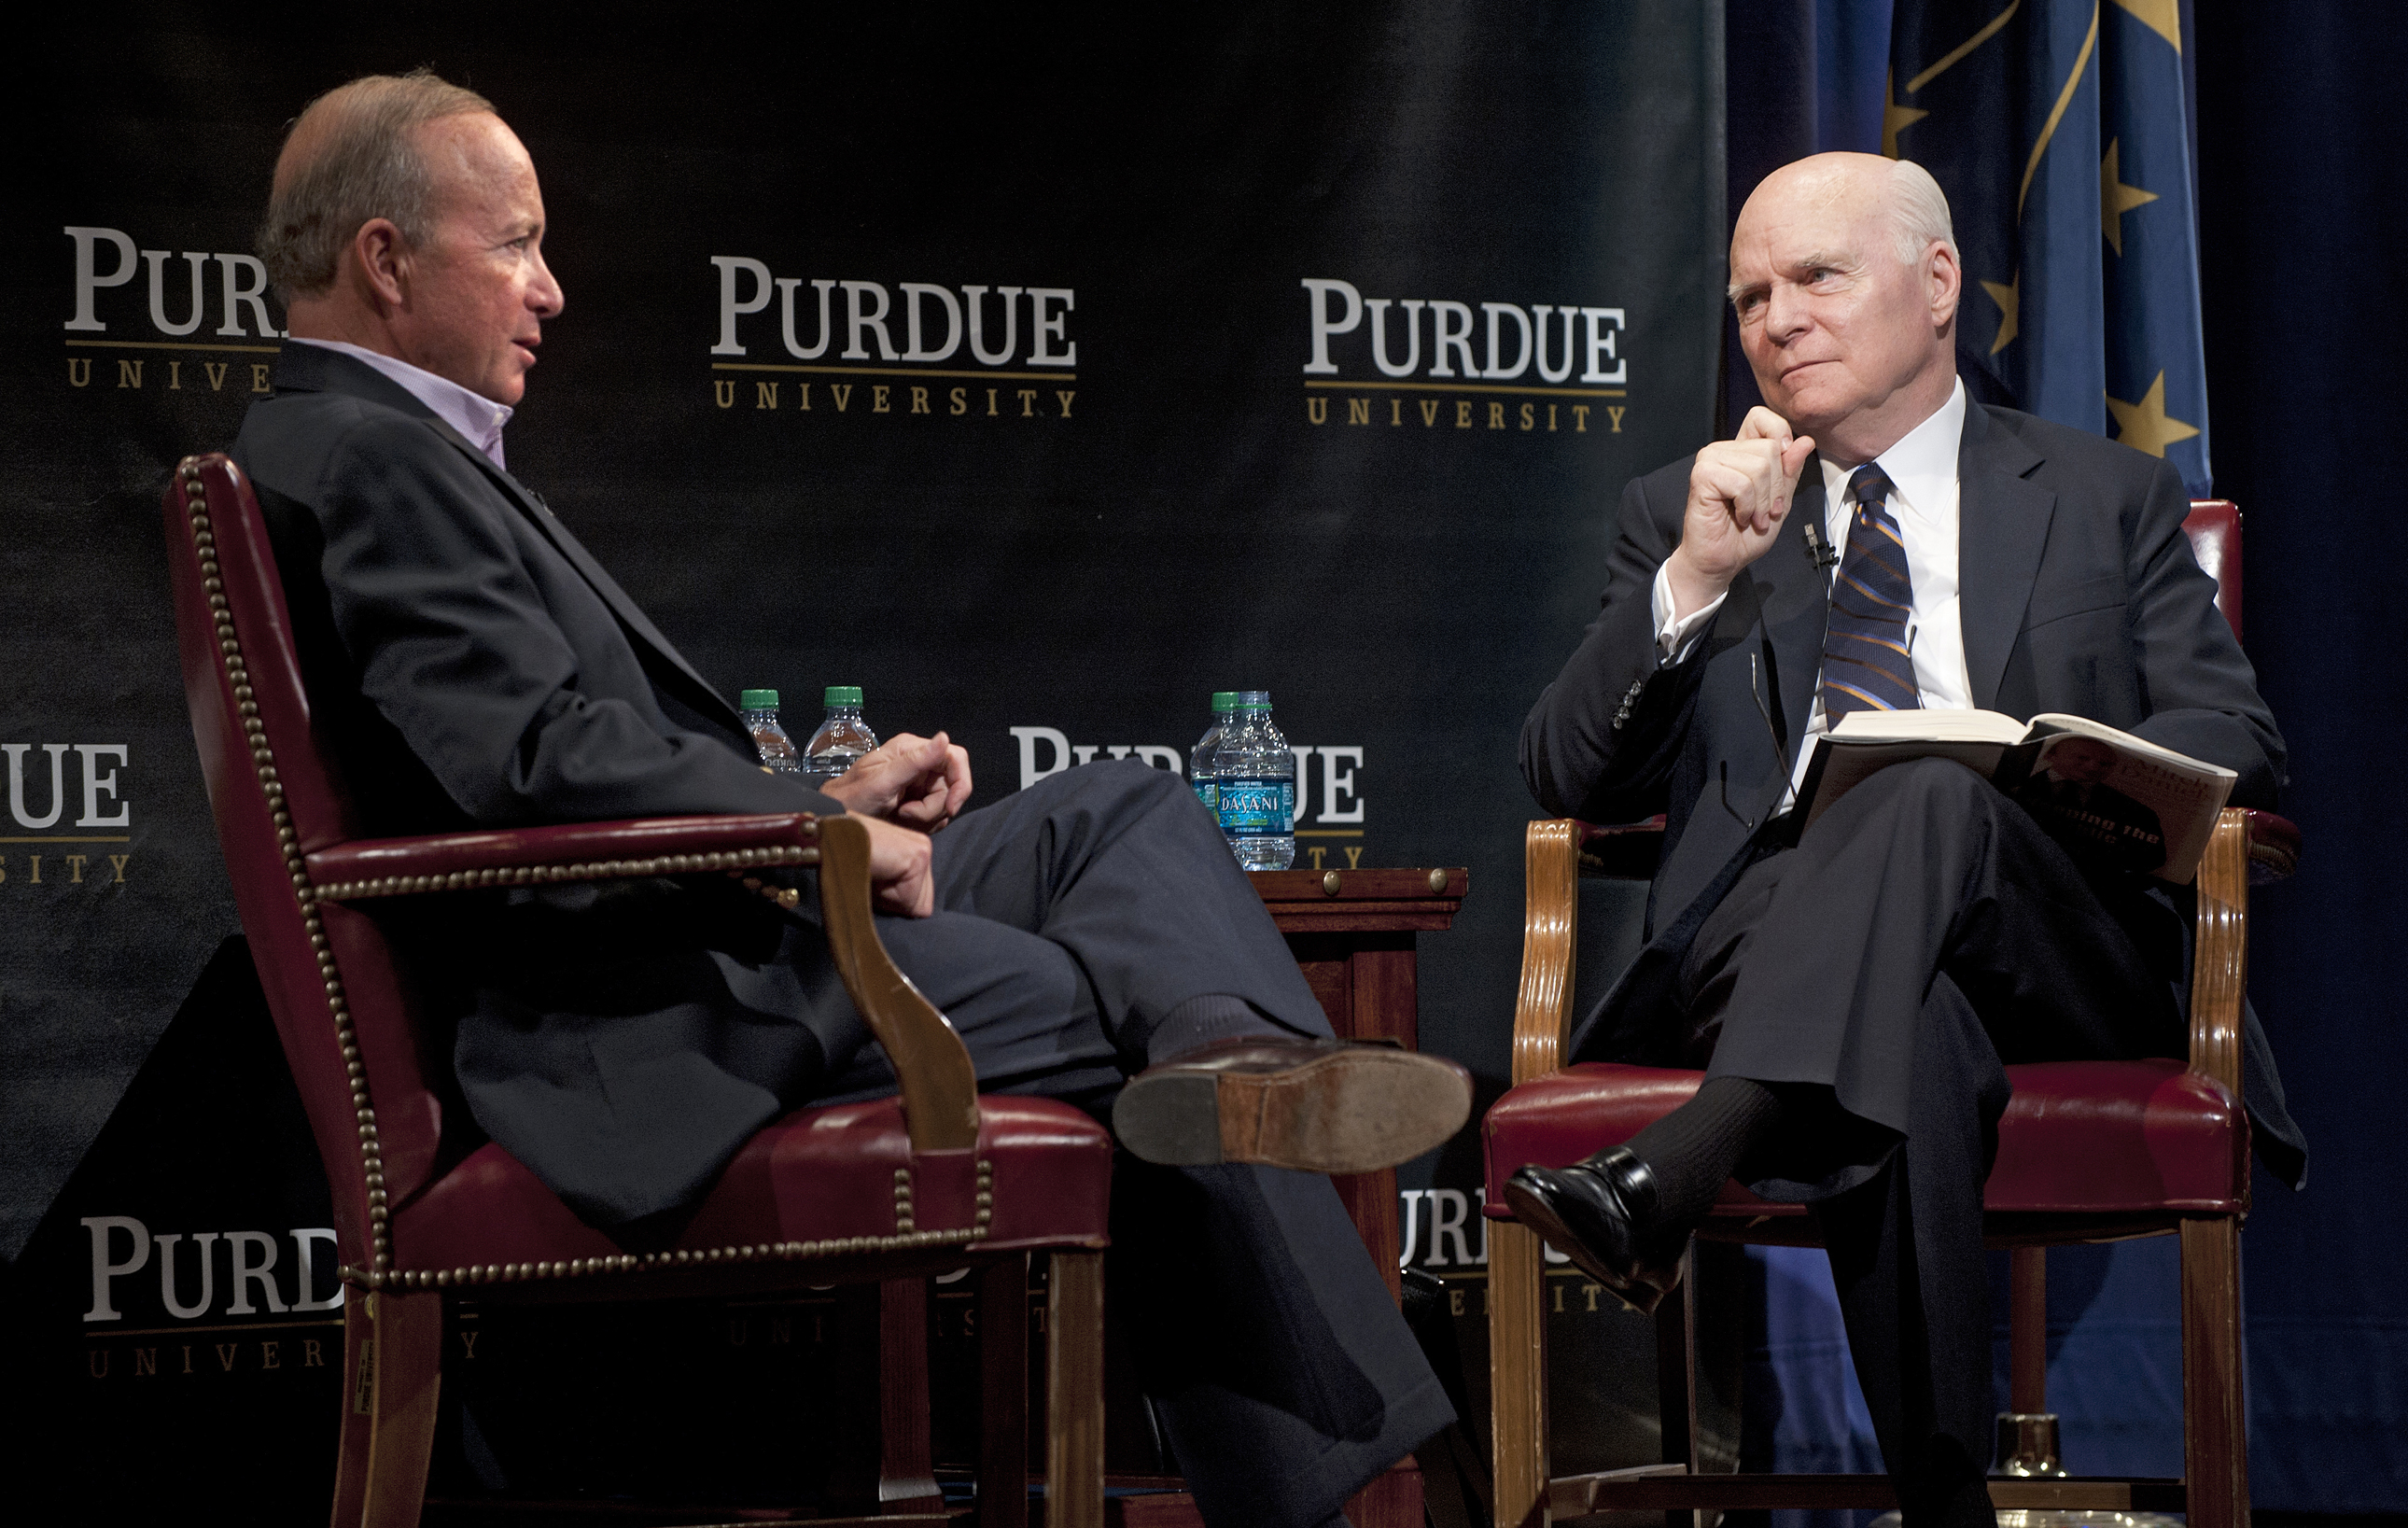 Brian Lamb interviews Mitch Daniels